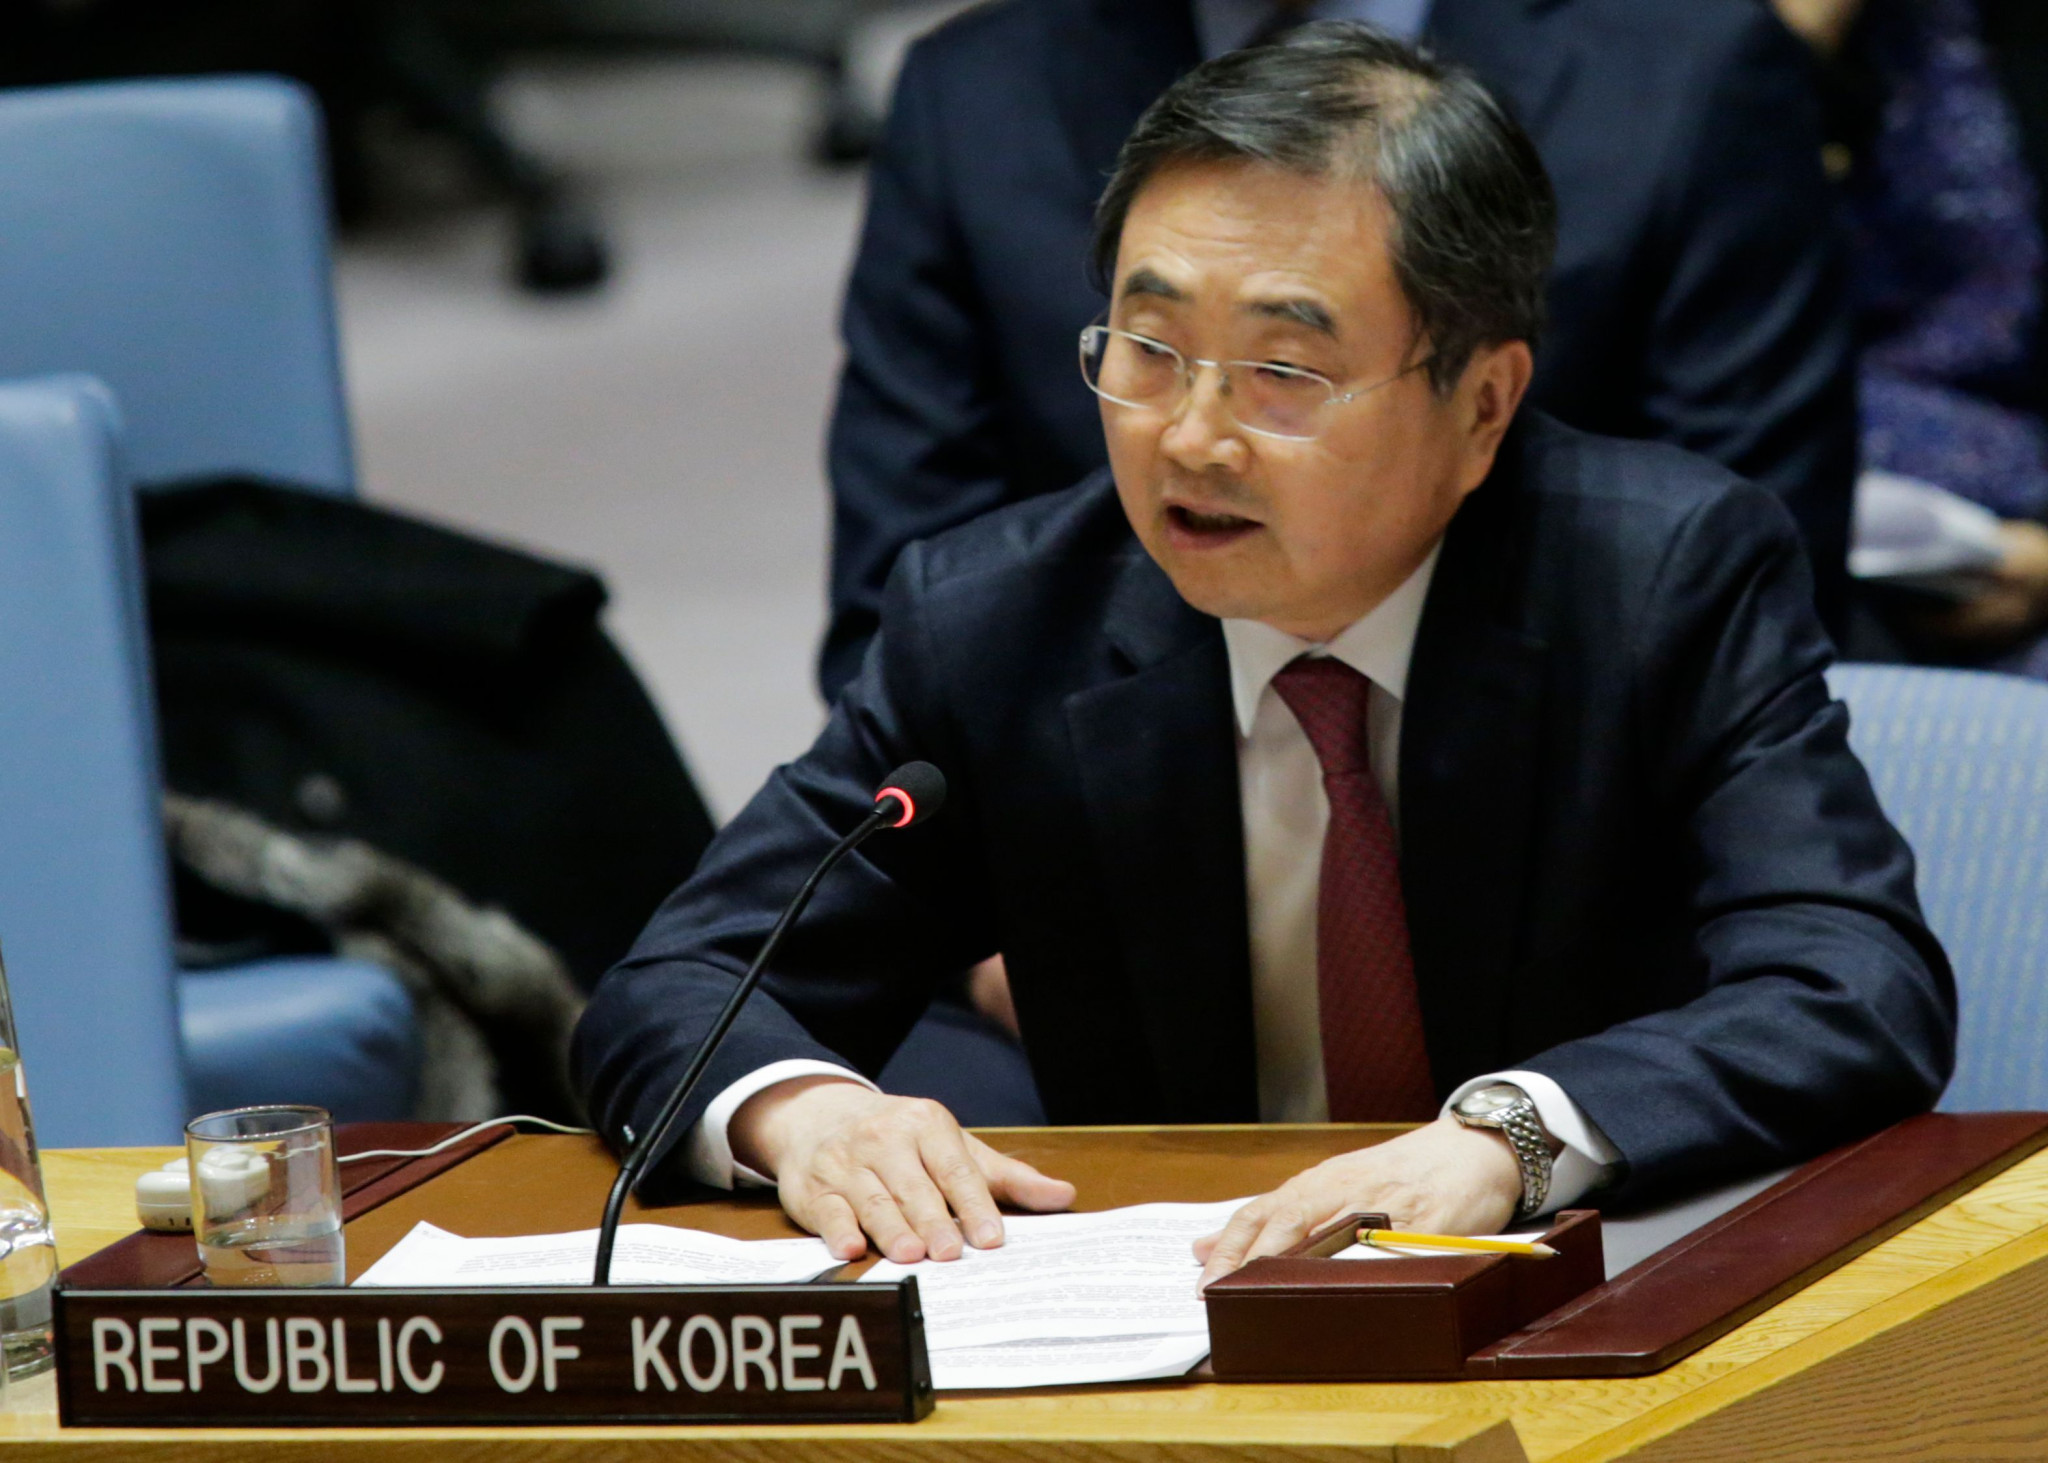 South Korea's Vice-Foreign Minister calls on North Korea to participate at Pyeongchang 2018